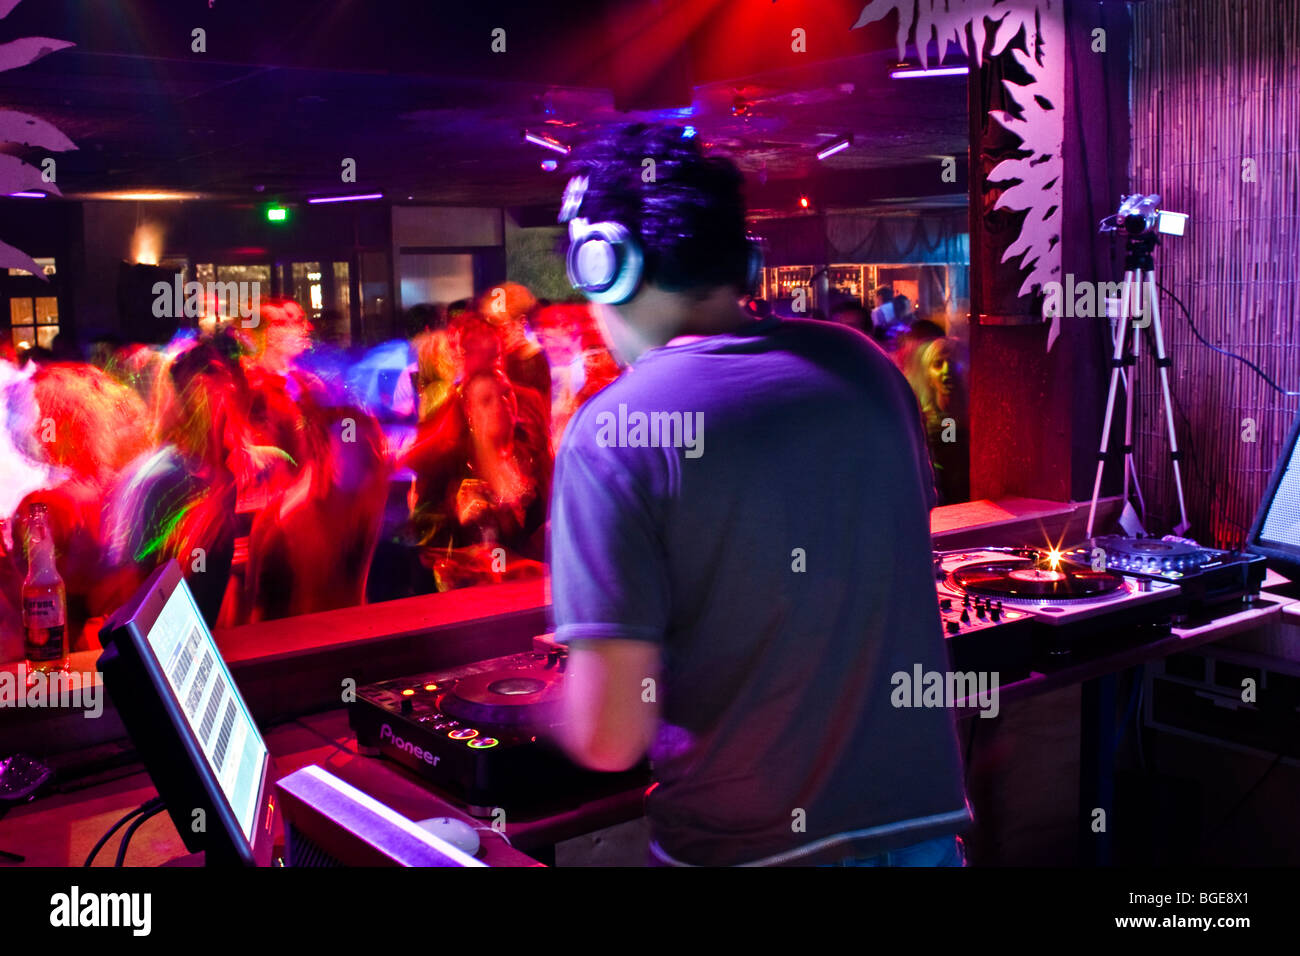 DJ mixing in a night club packed with dancers - Stock Image